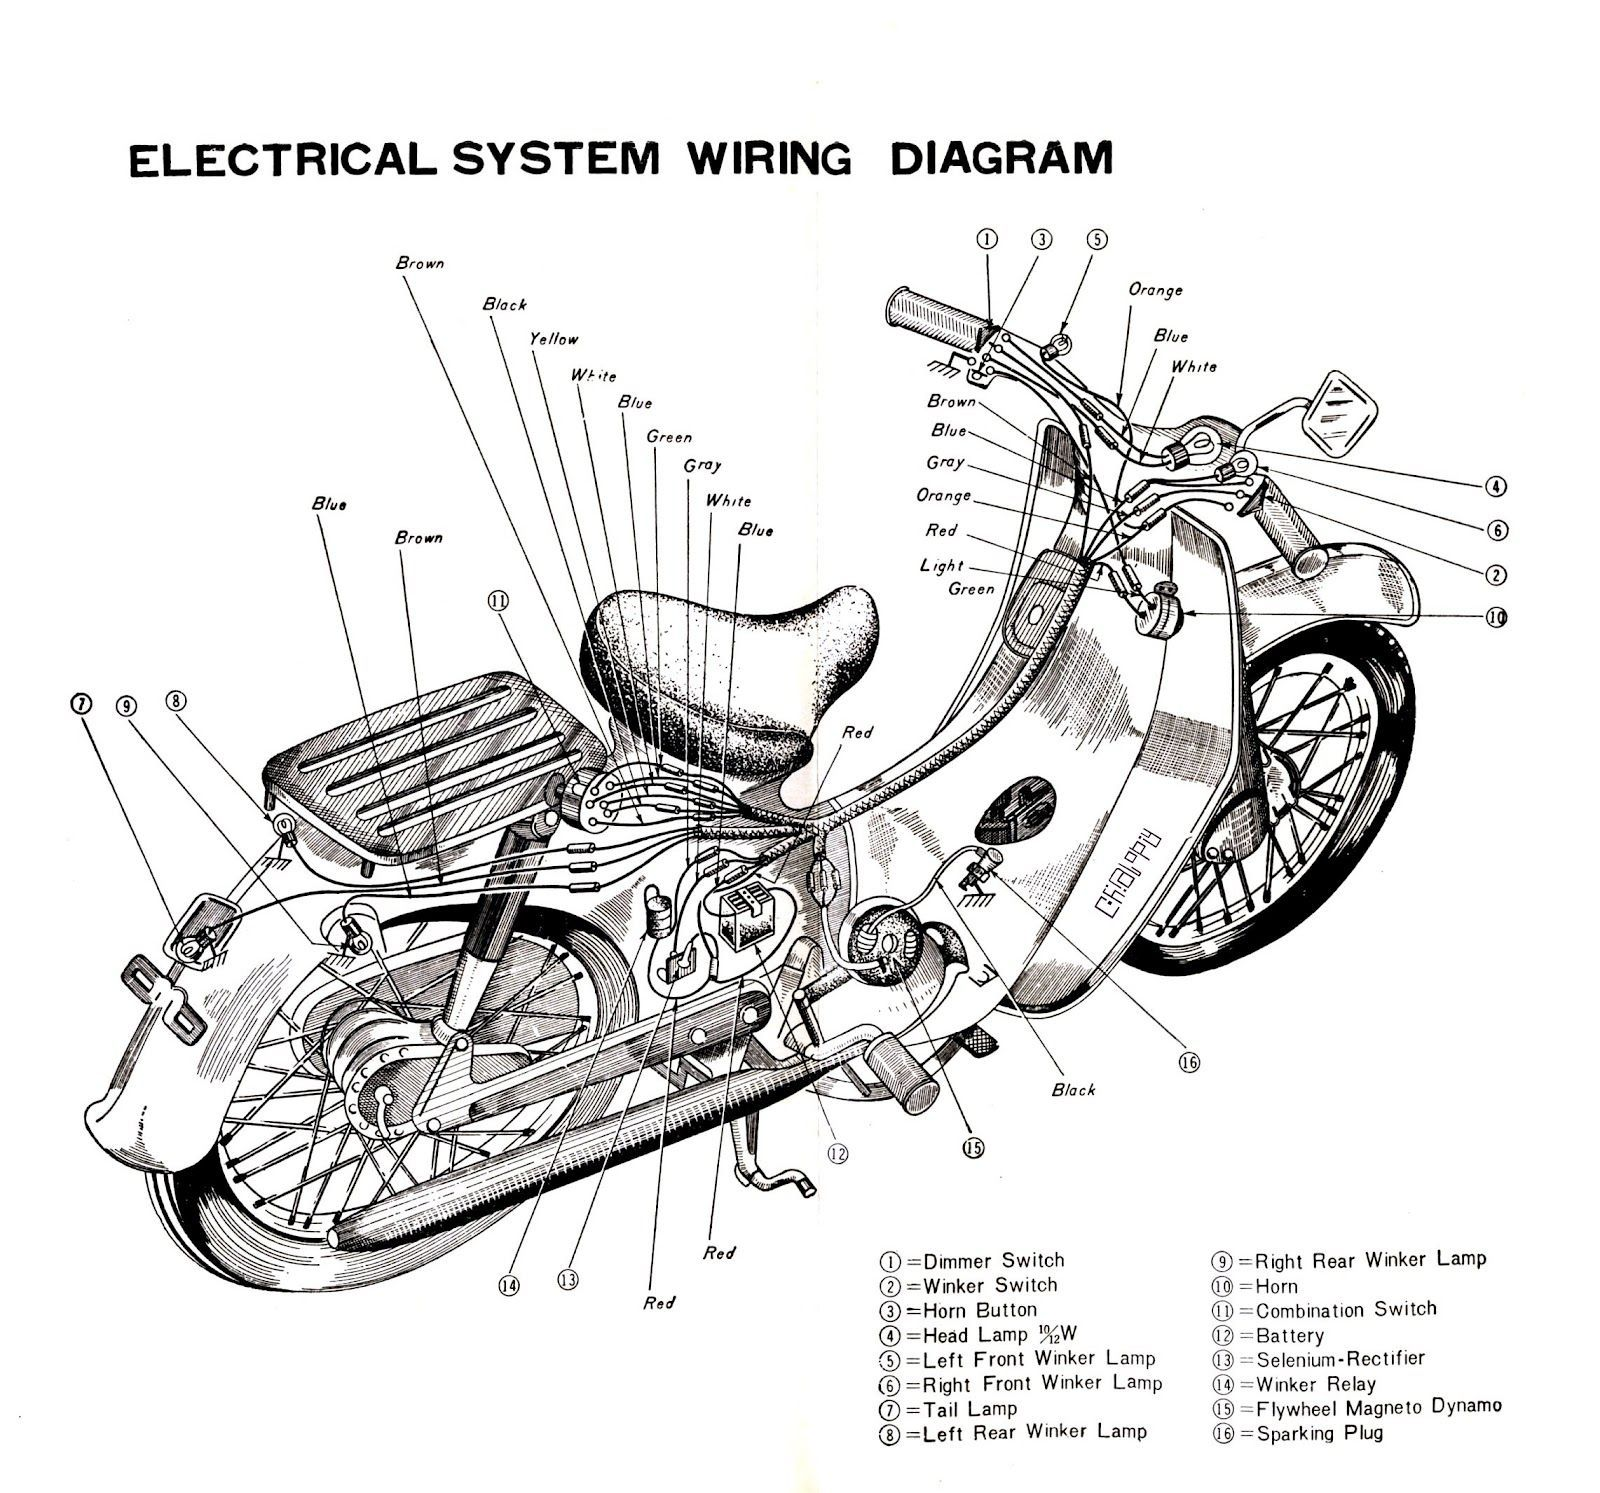 small resolution of image result for electrical system wiring diagram honda c70 honda bycke diagram honda